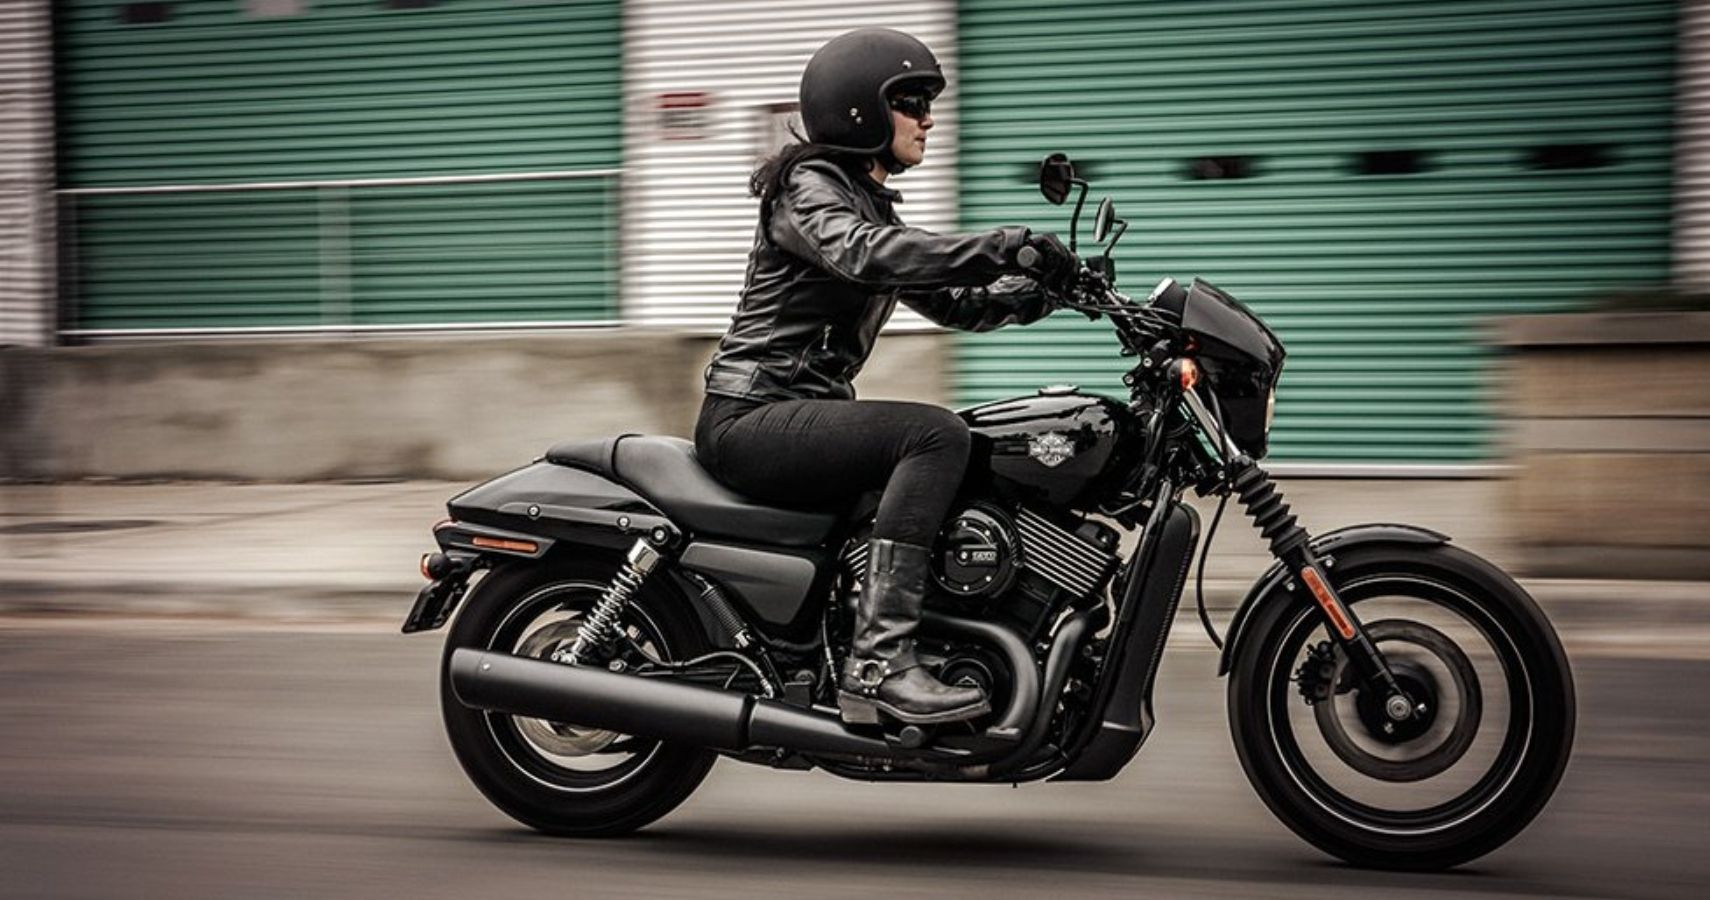 Students Can Ride A Harley Davidson For College Credits In